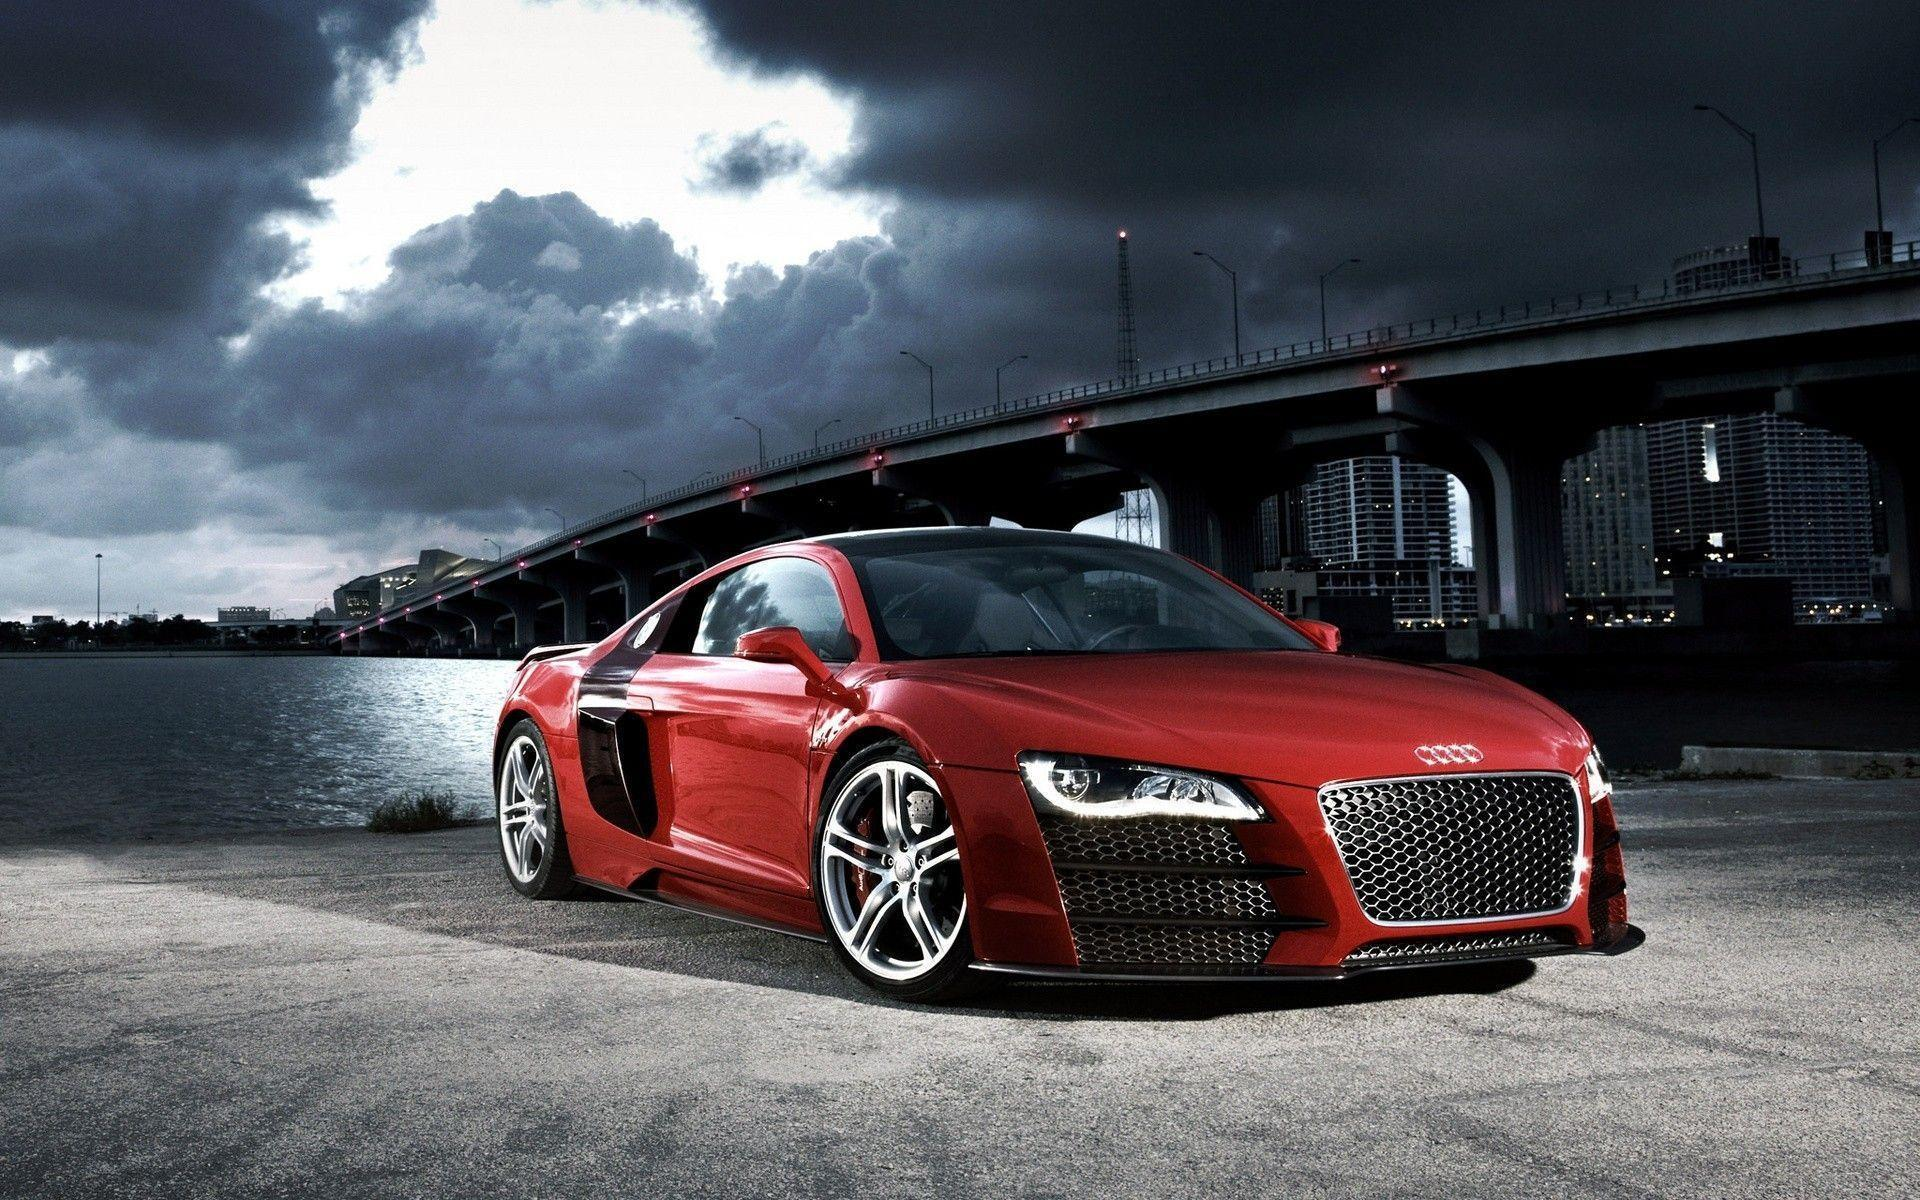 Audi R8 TDI Le Mans Concept Wallpapers